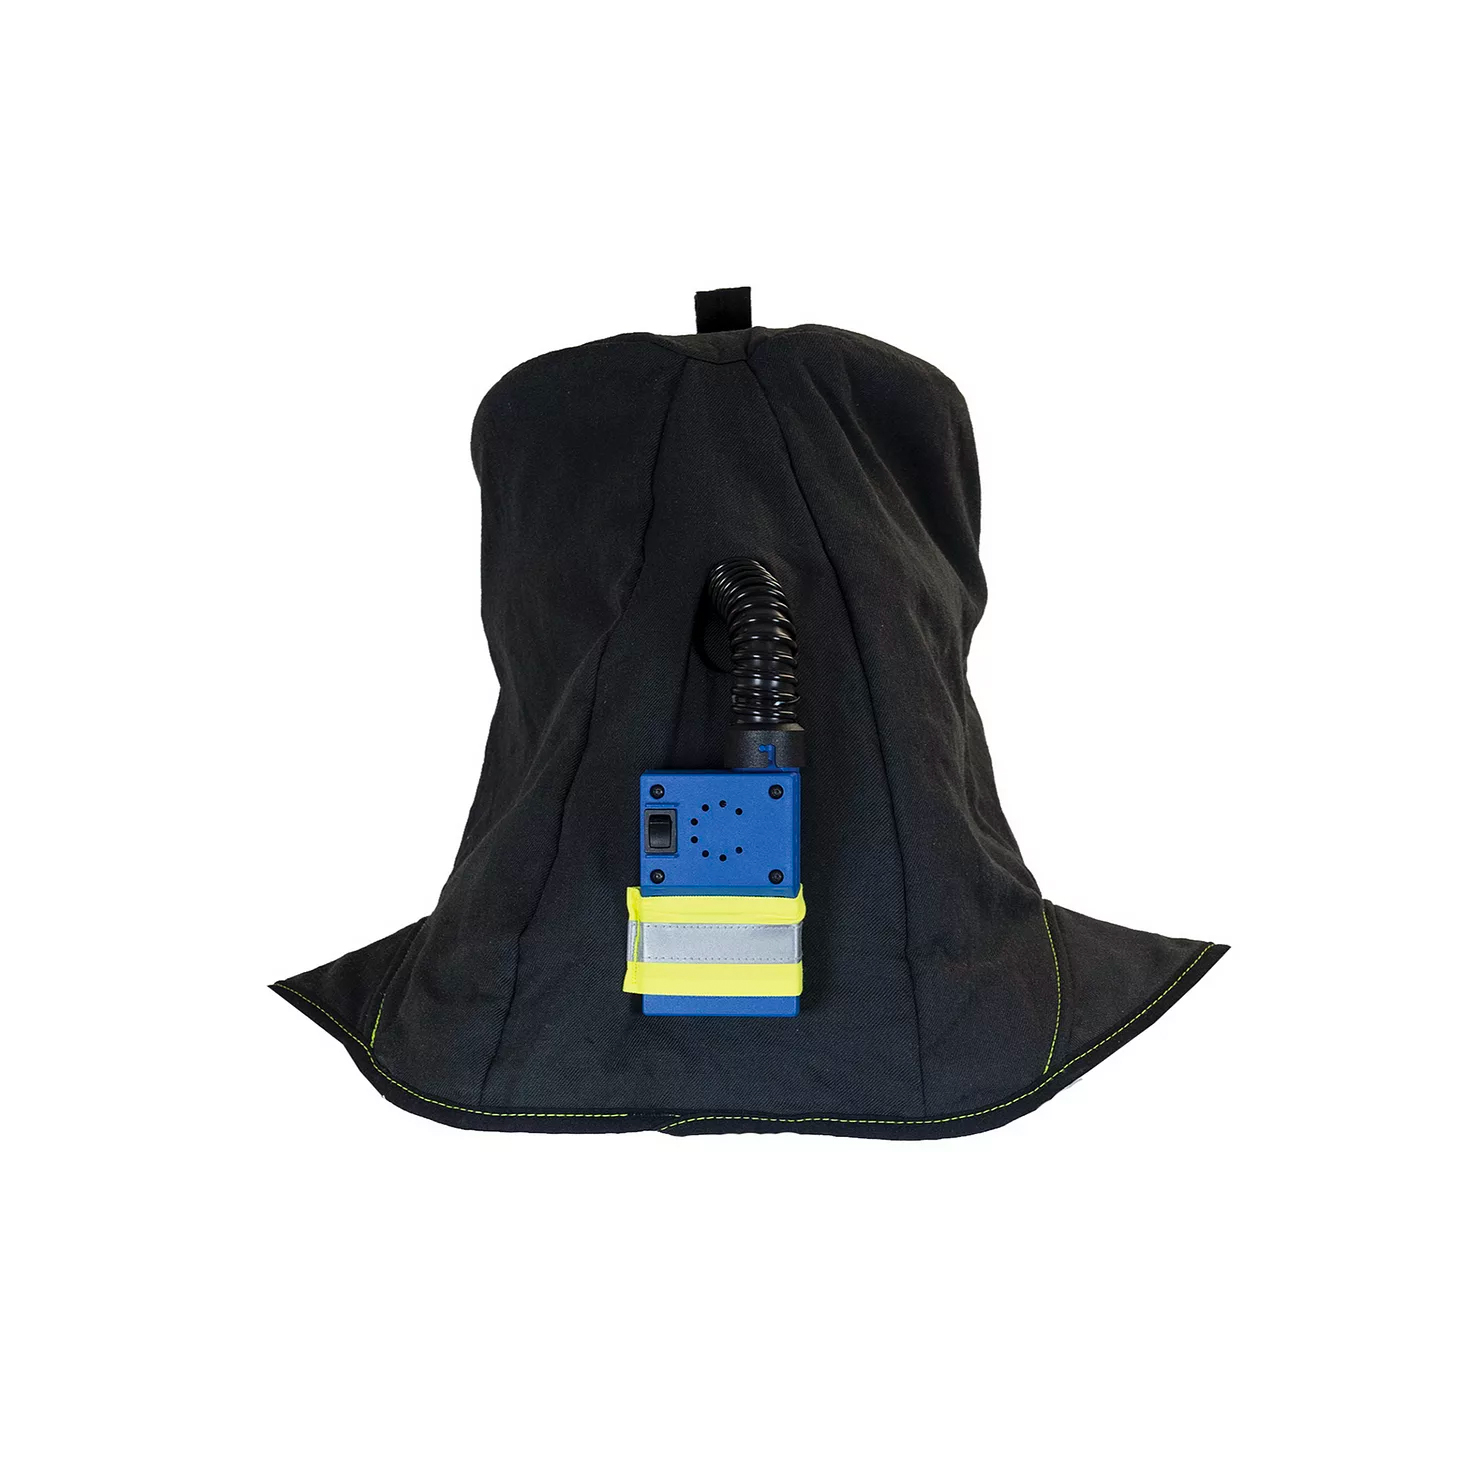 hood-with-vent-oberon-arc-flash